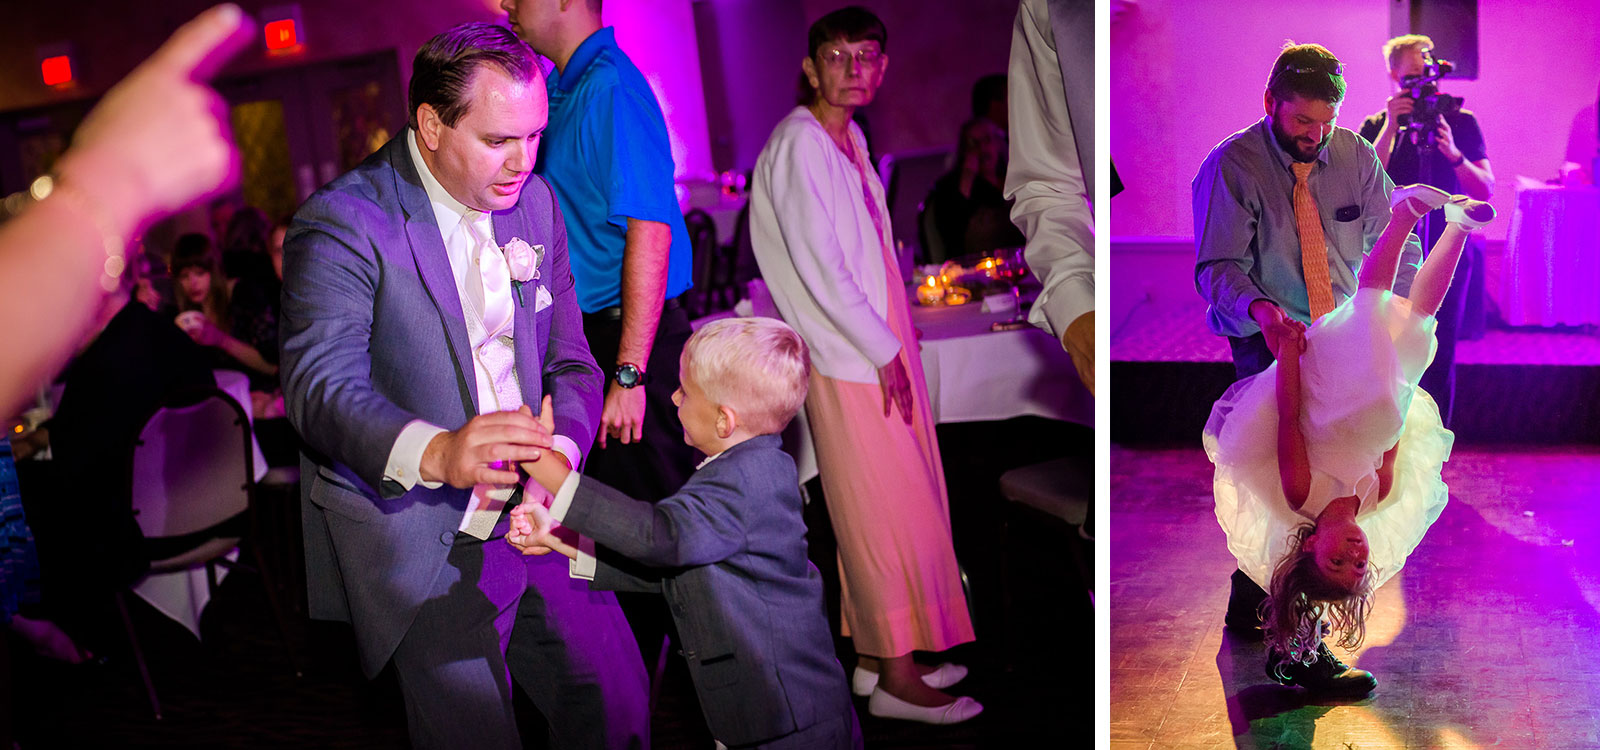 Eric_and_Christy_Photography_Blog_Julie_Adam_Wedding-56-57